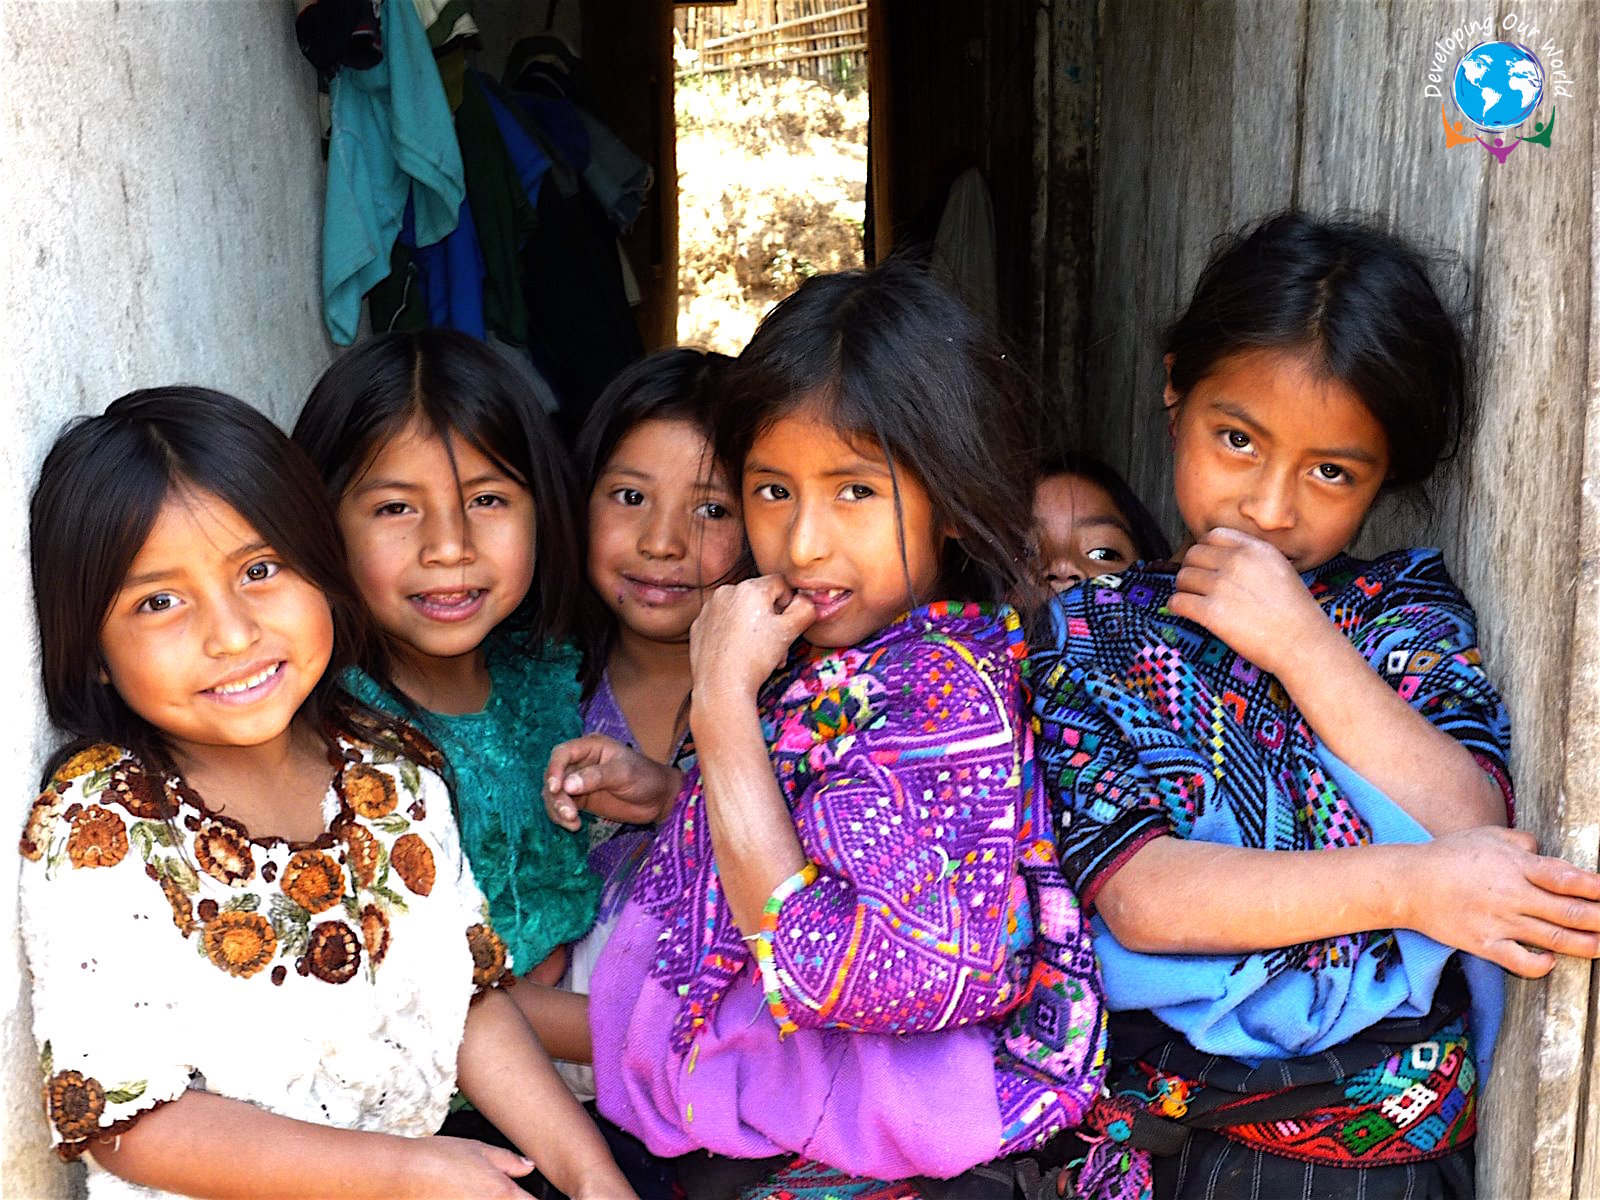 The Condition of Children's Rights in Guatemala